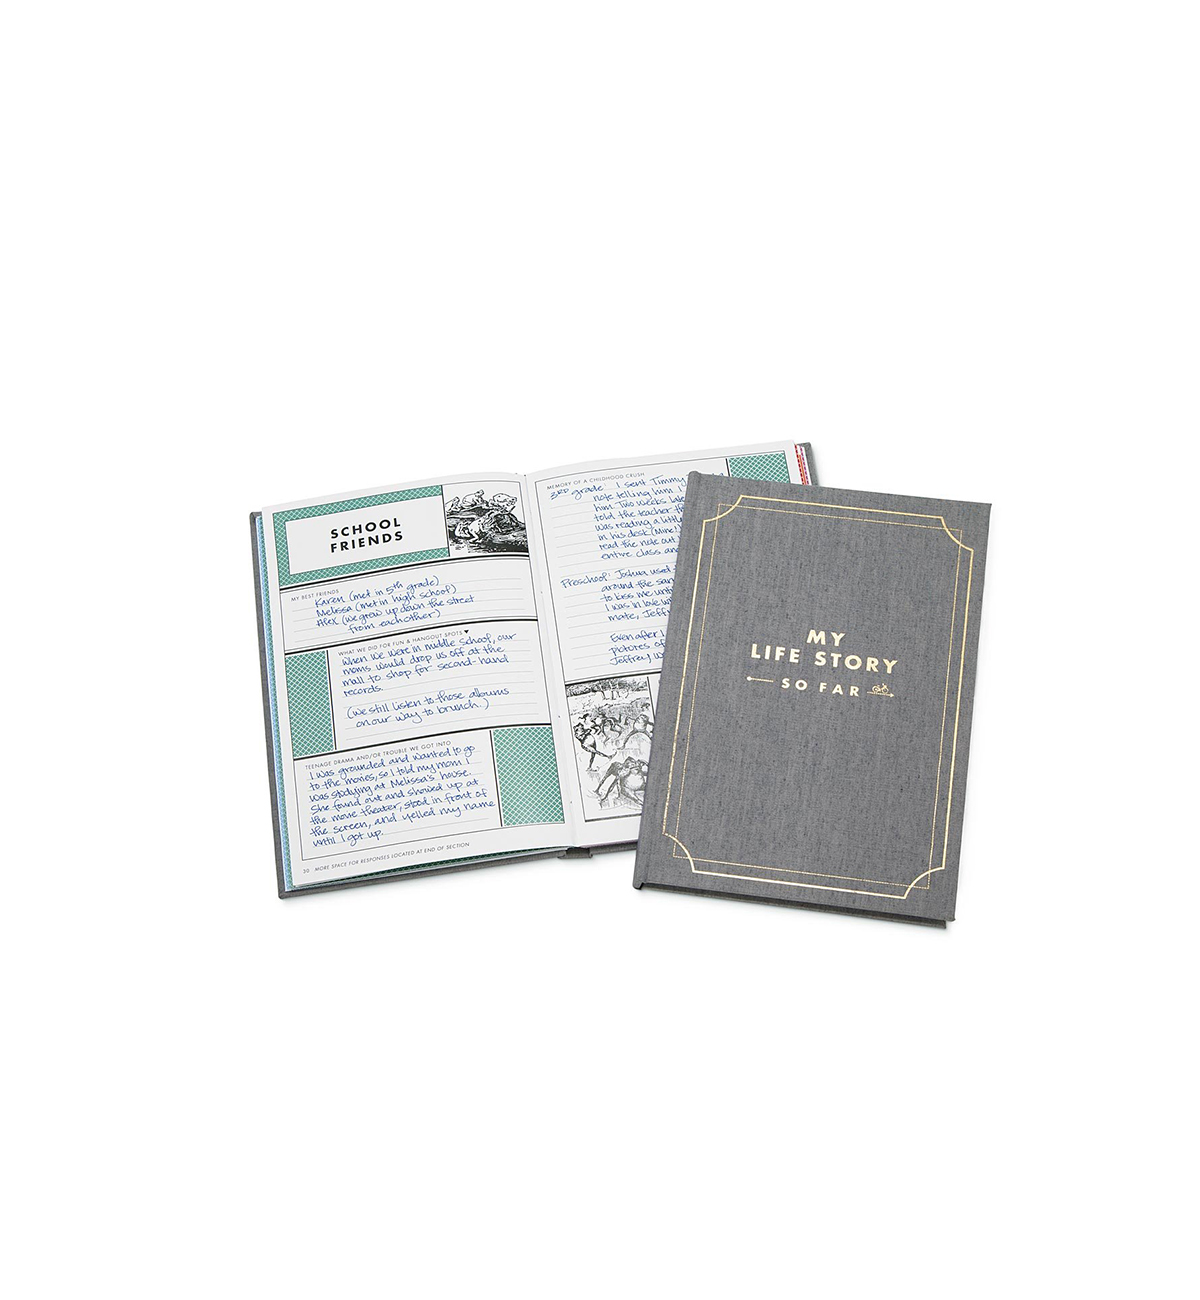 5 Best Selling Father S Day Gifts Under 50 From Uncommon Goods